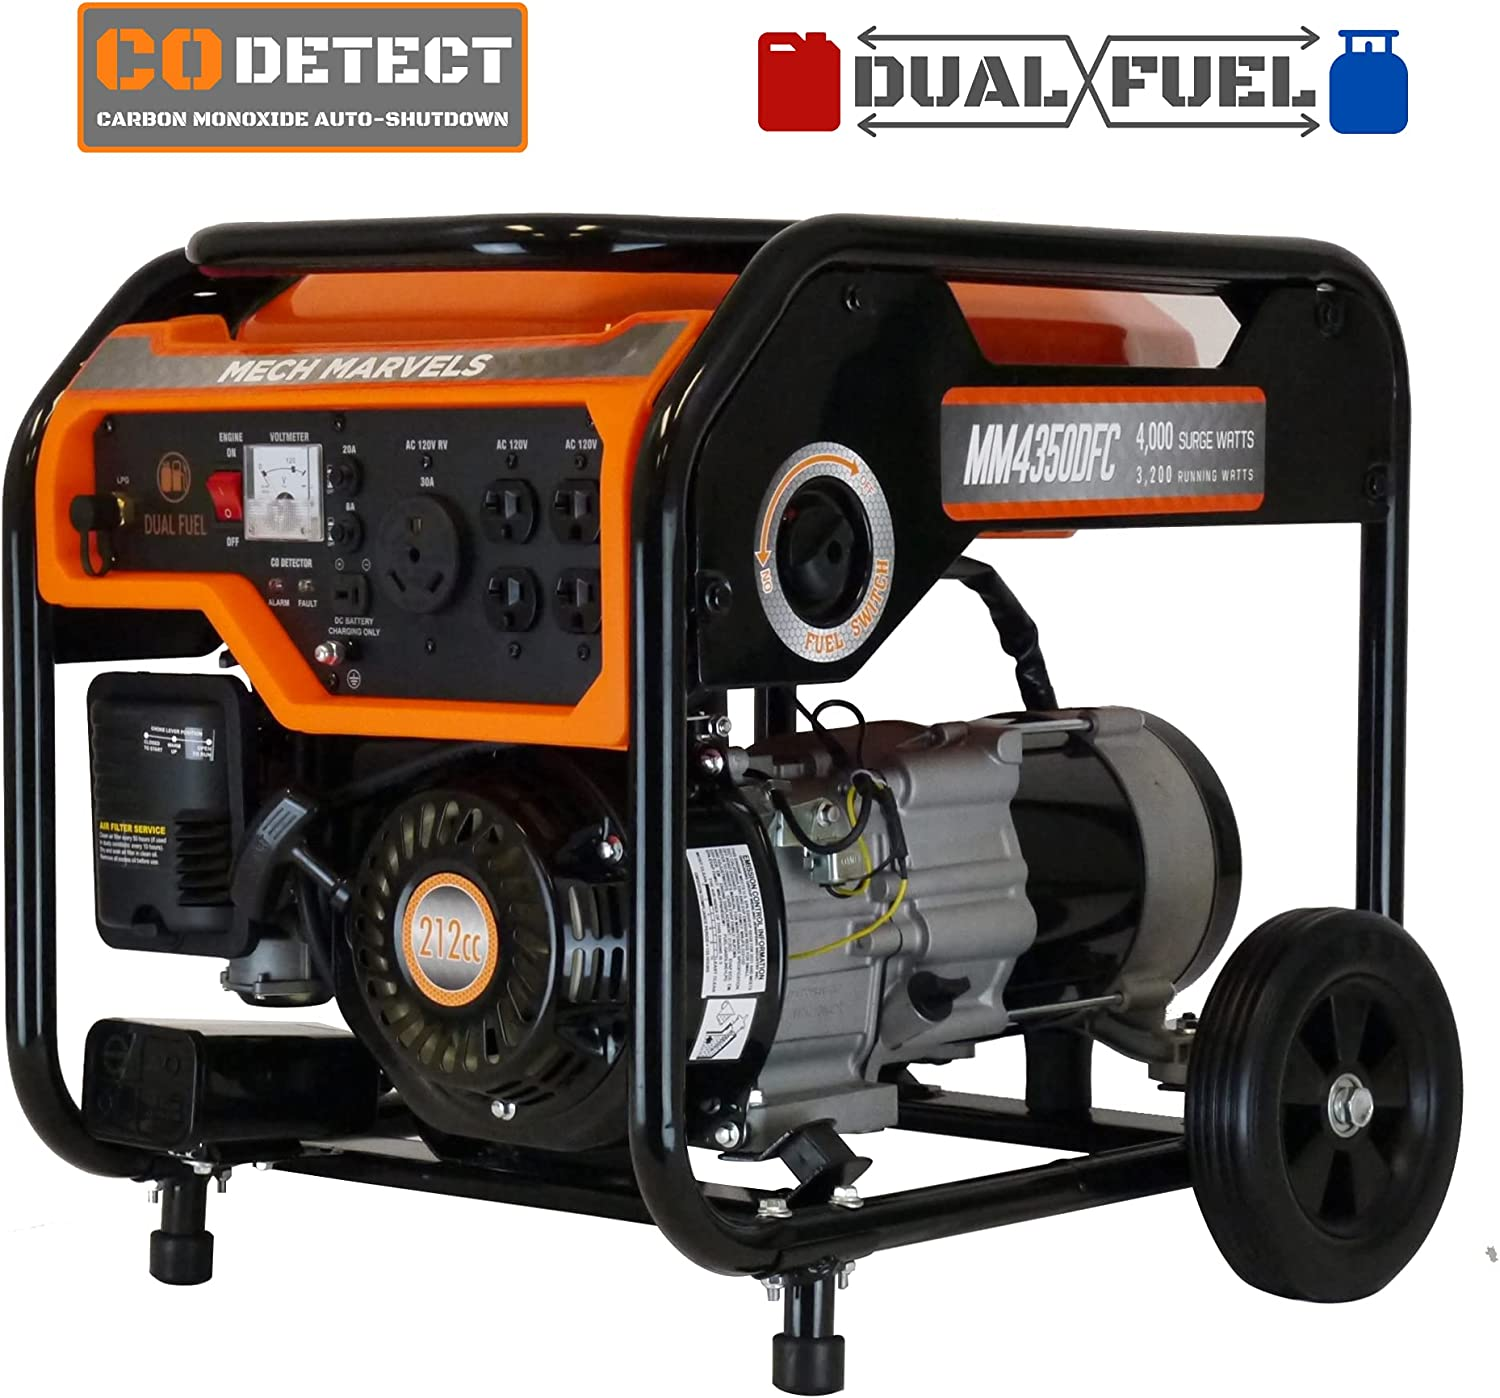 Mech Marvels MM4350DFC Orange Generator All stores are Baltimore Mall sold Portable